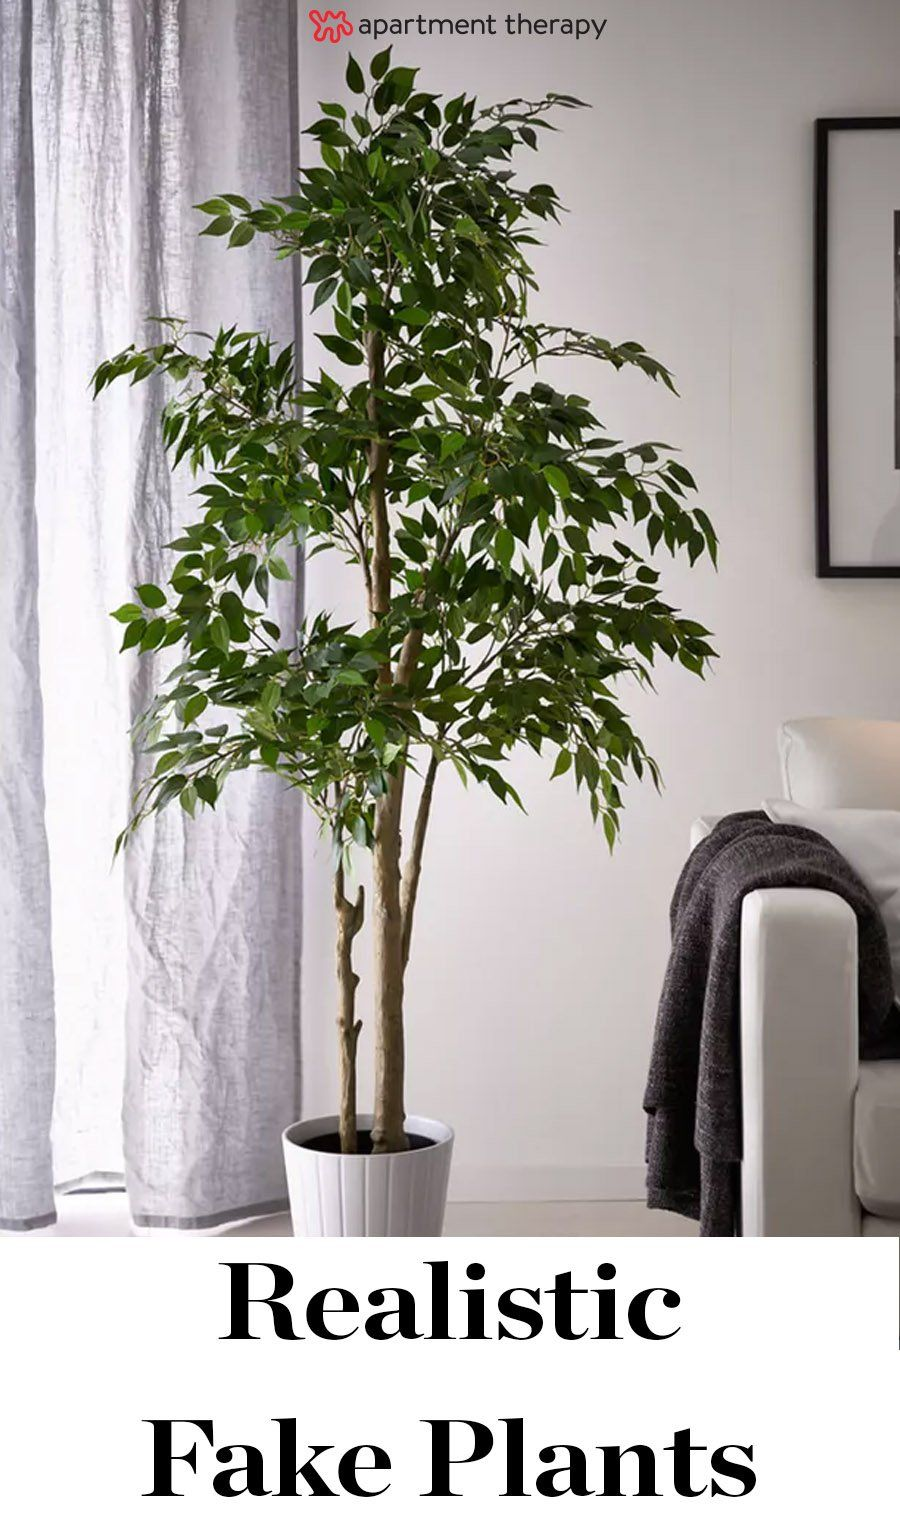 Fake Plants 101 How To Buy The Best Fake Plants Fake Plants Decor Artificial Plants Decor Fake Plants